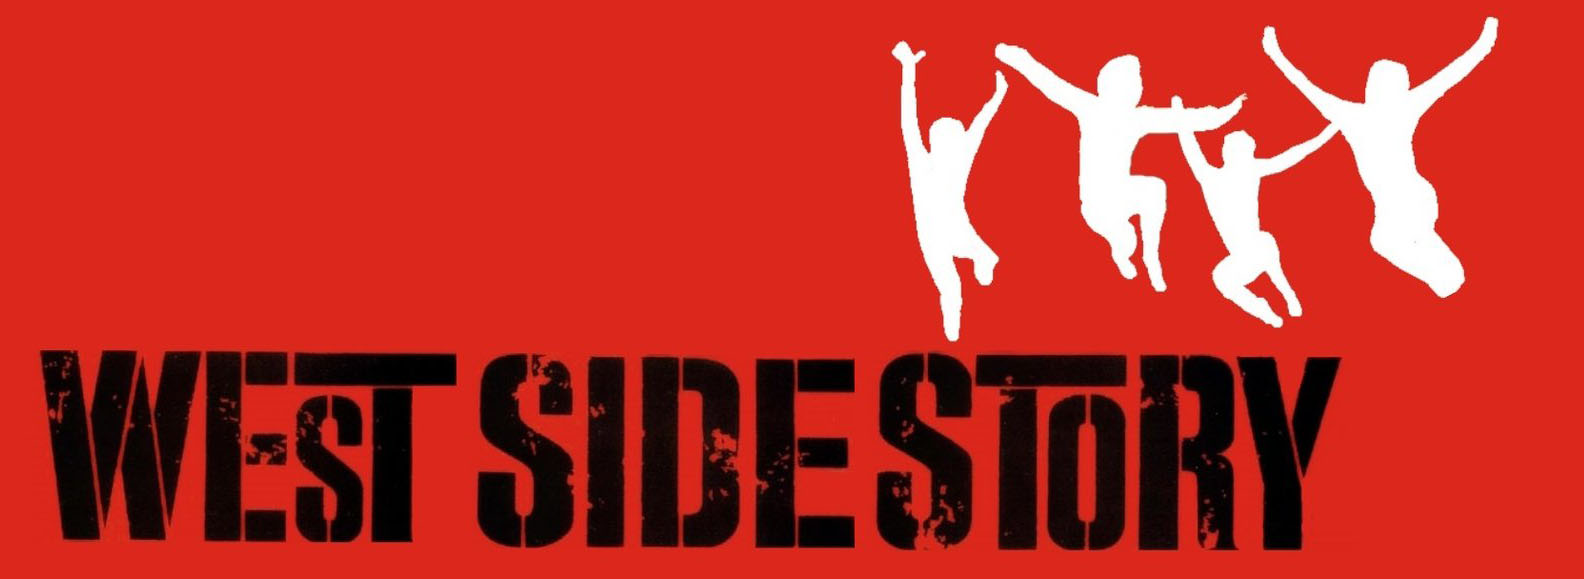 west_side_story__